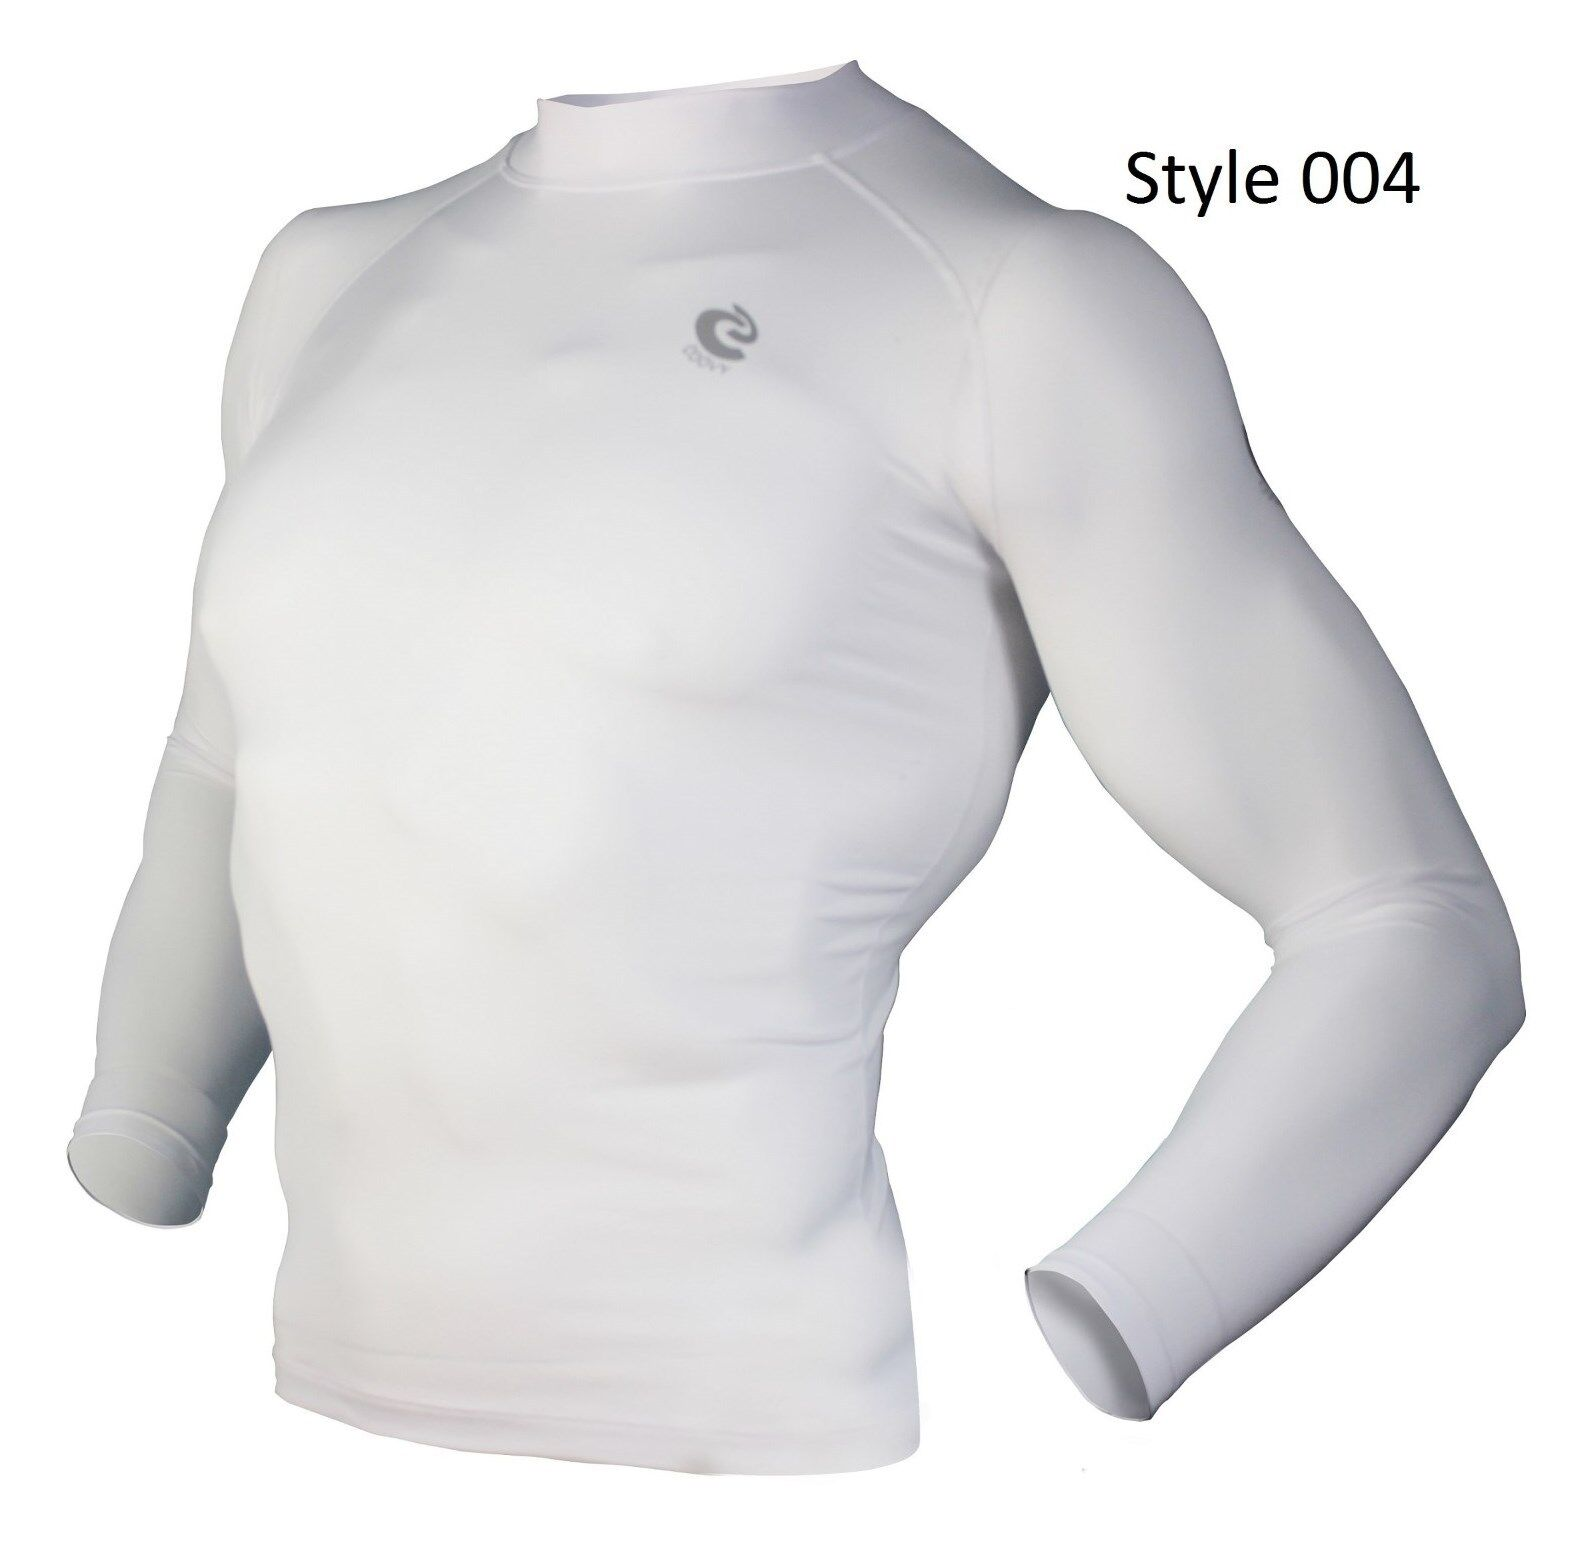 004 White Long Sleeve Shirt